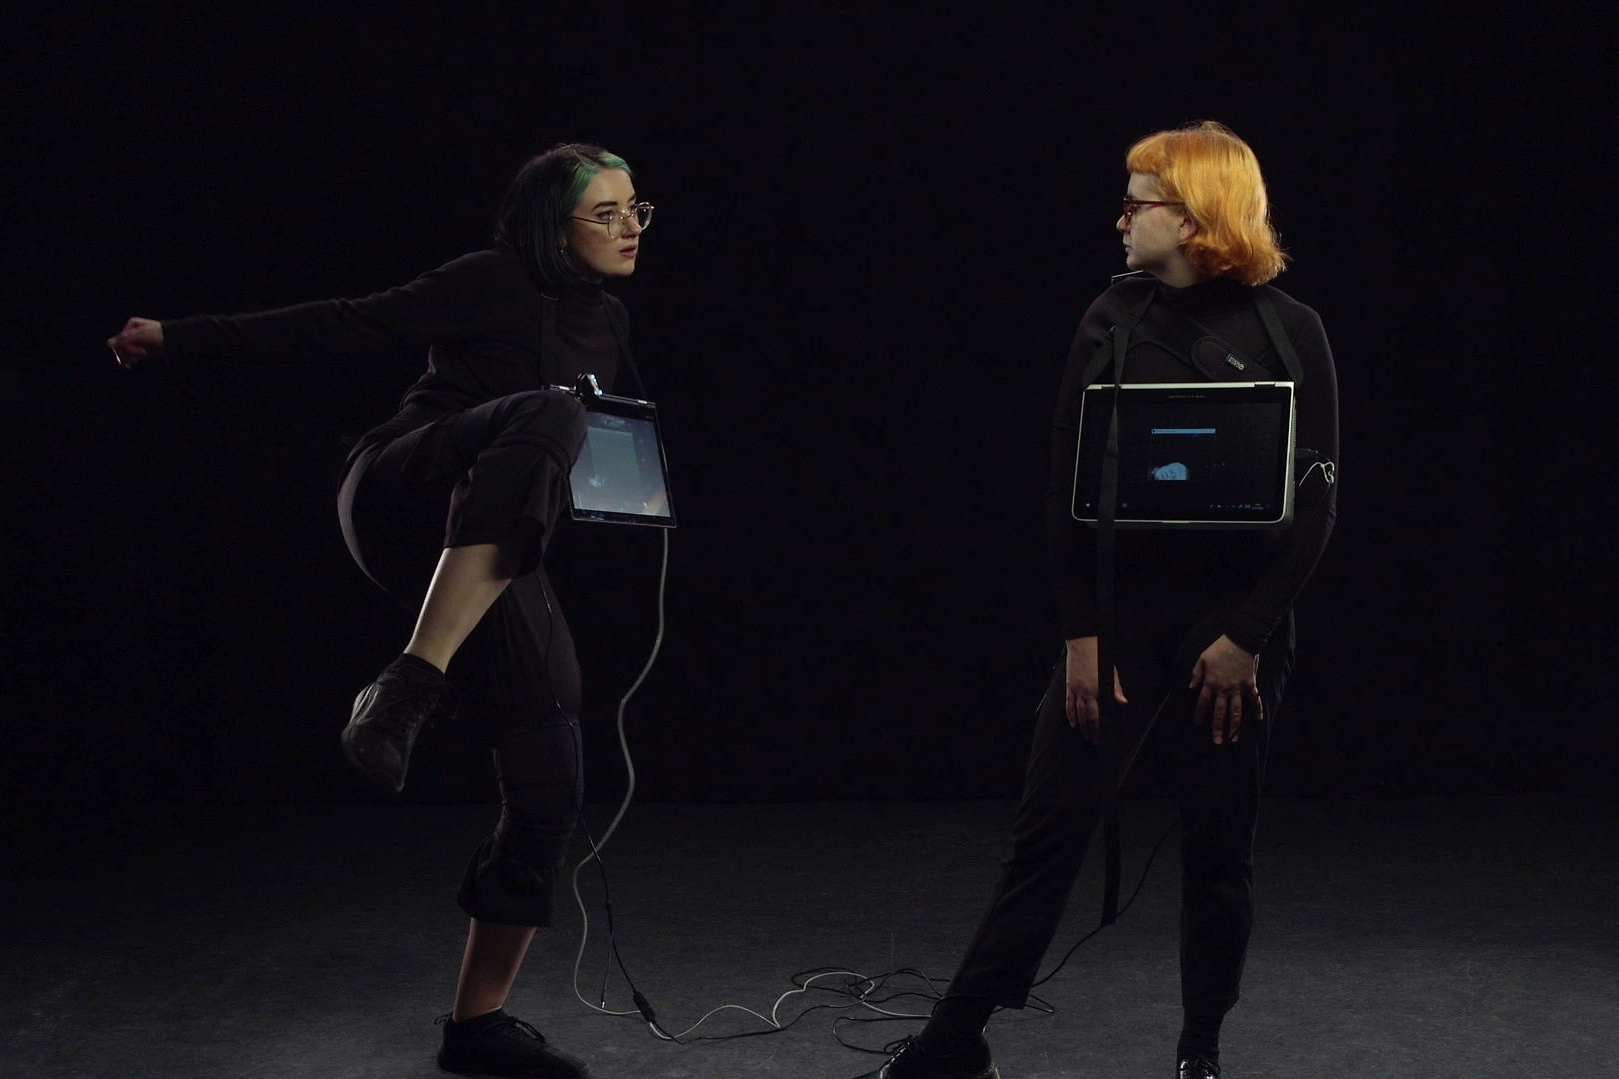 Two performers have screens attached to their chests. They are dressed in black, facing eachother in a dark room.